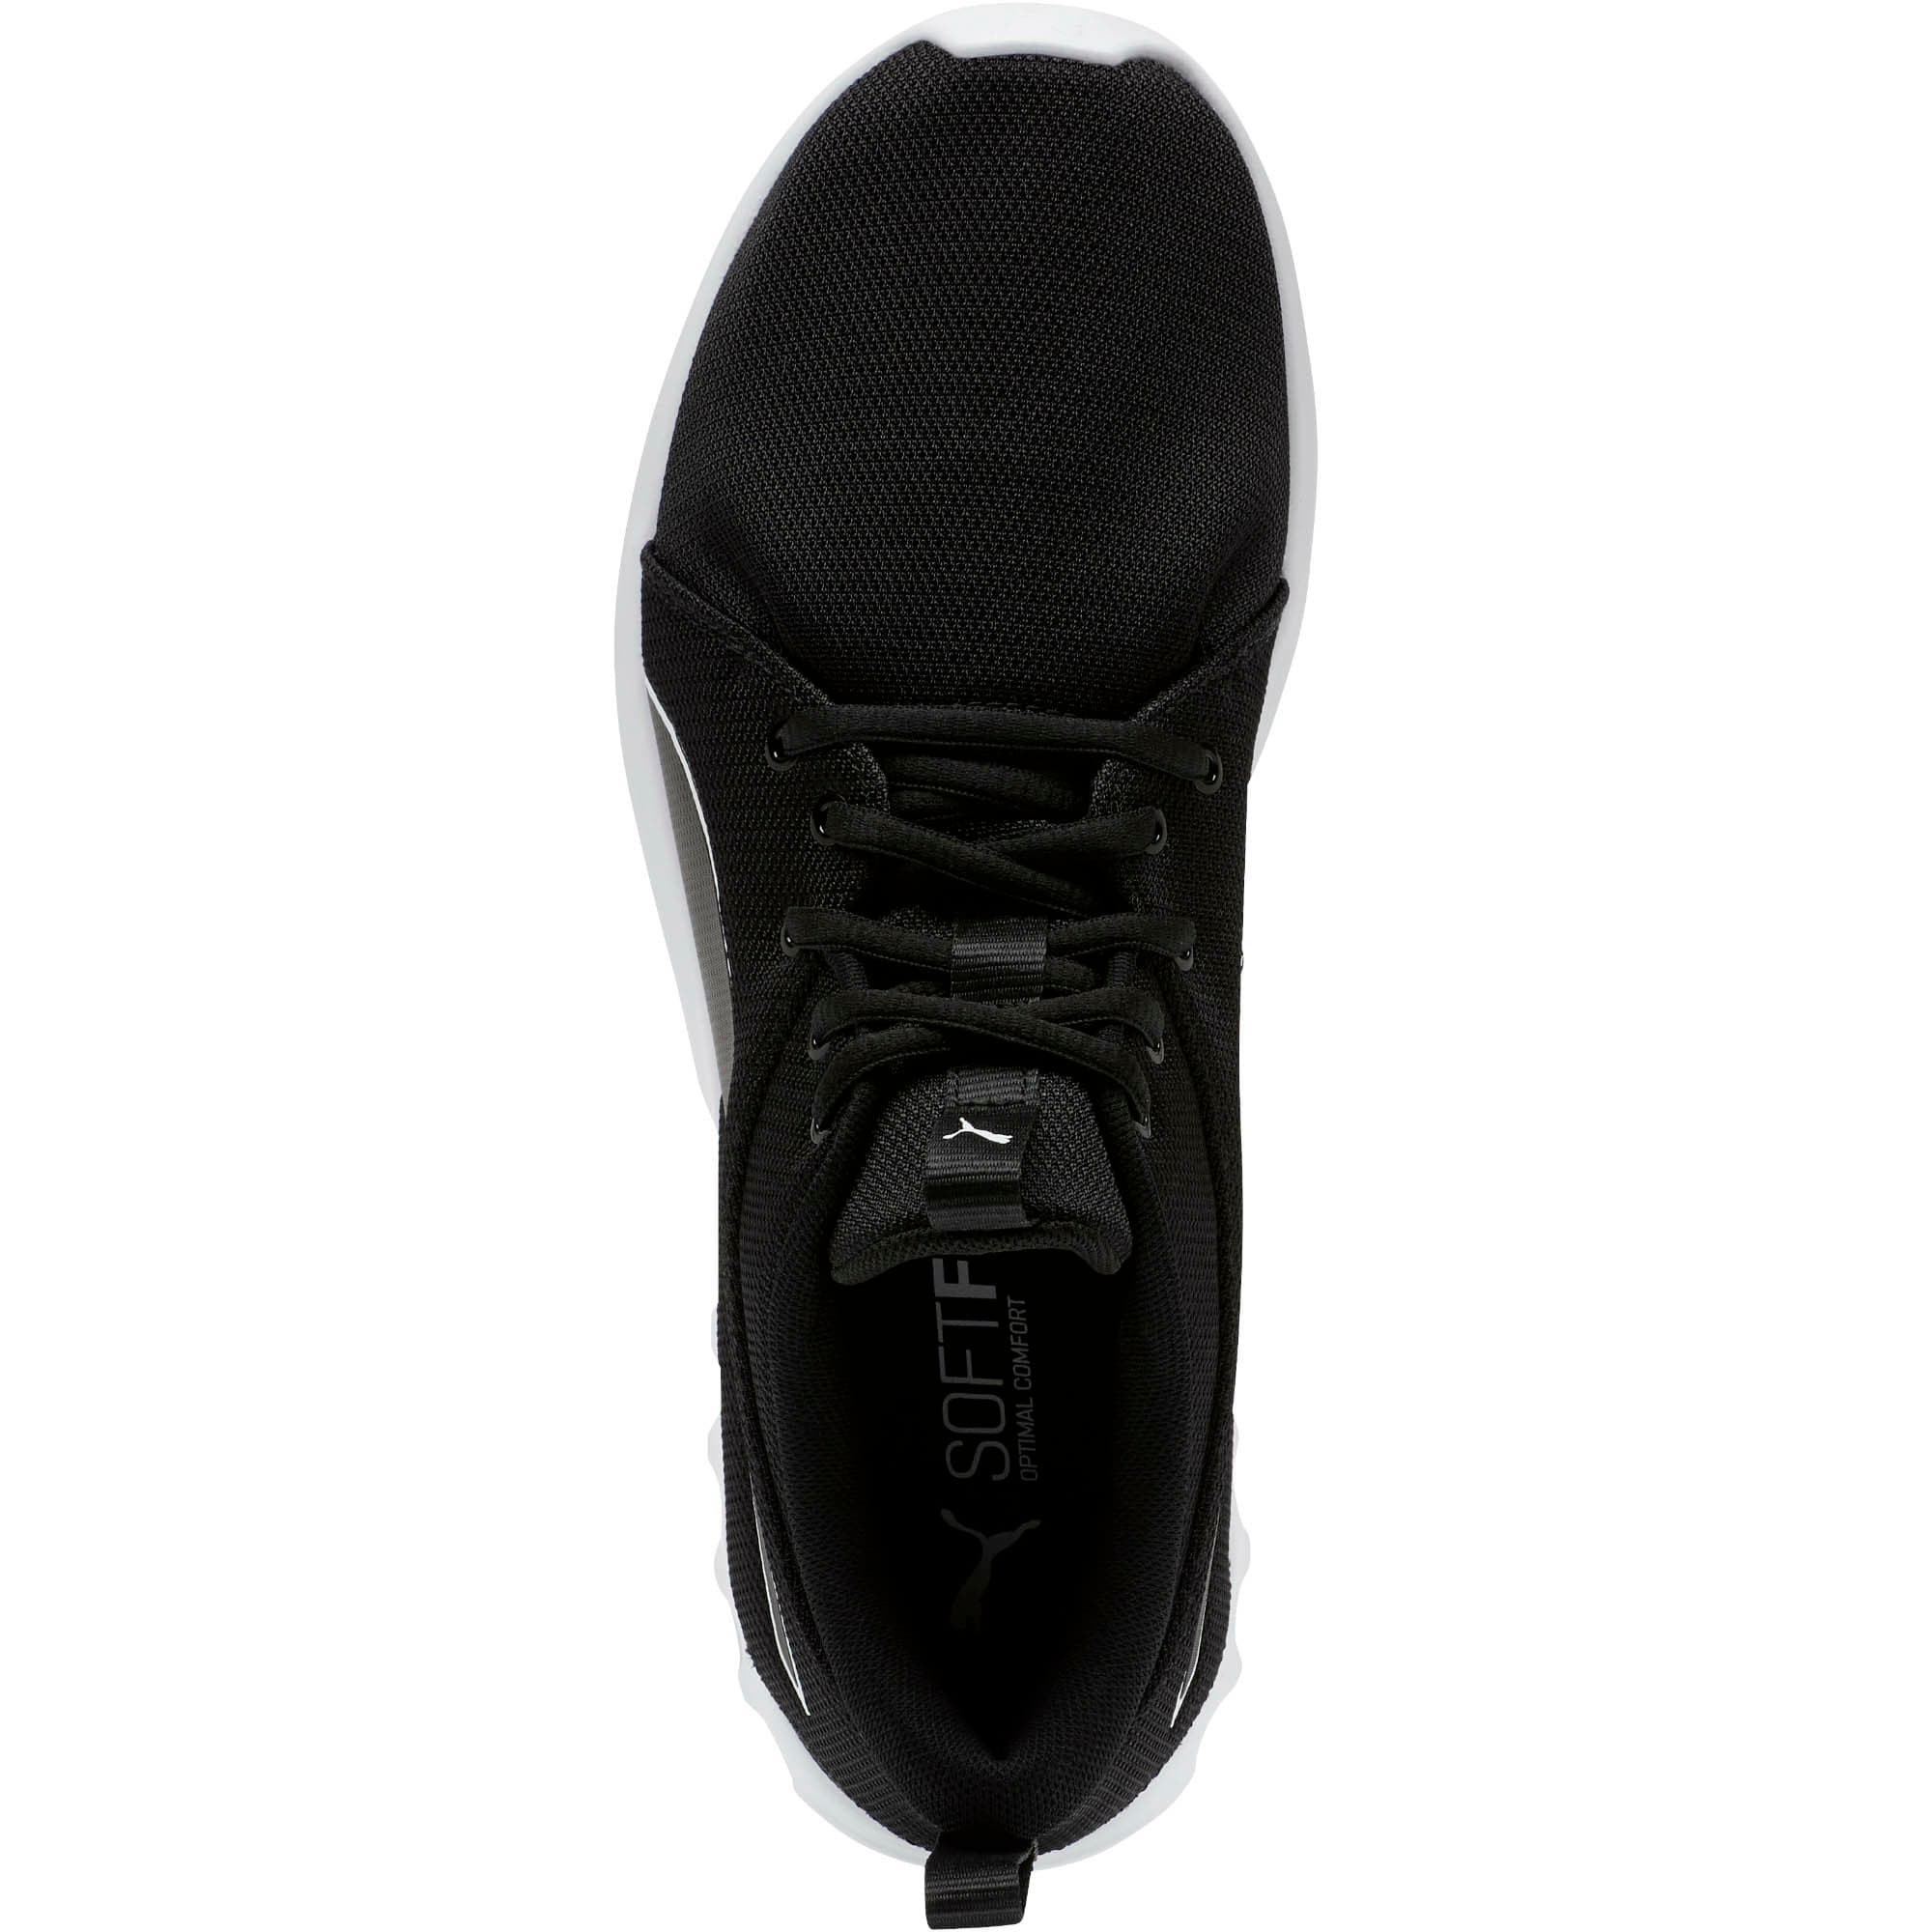 Thumbnail 5 of Carson 2 Cosmo Men's Running Shoes, Puma Black-Puma White, medium